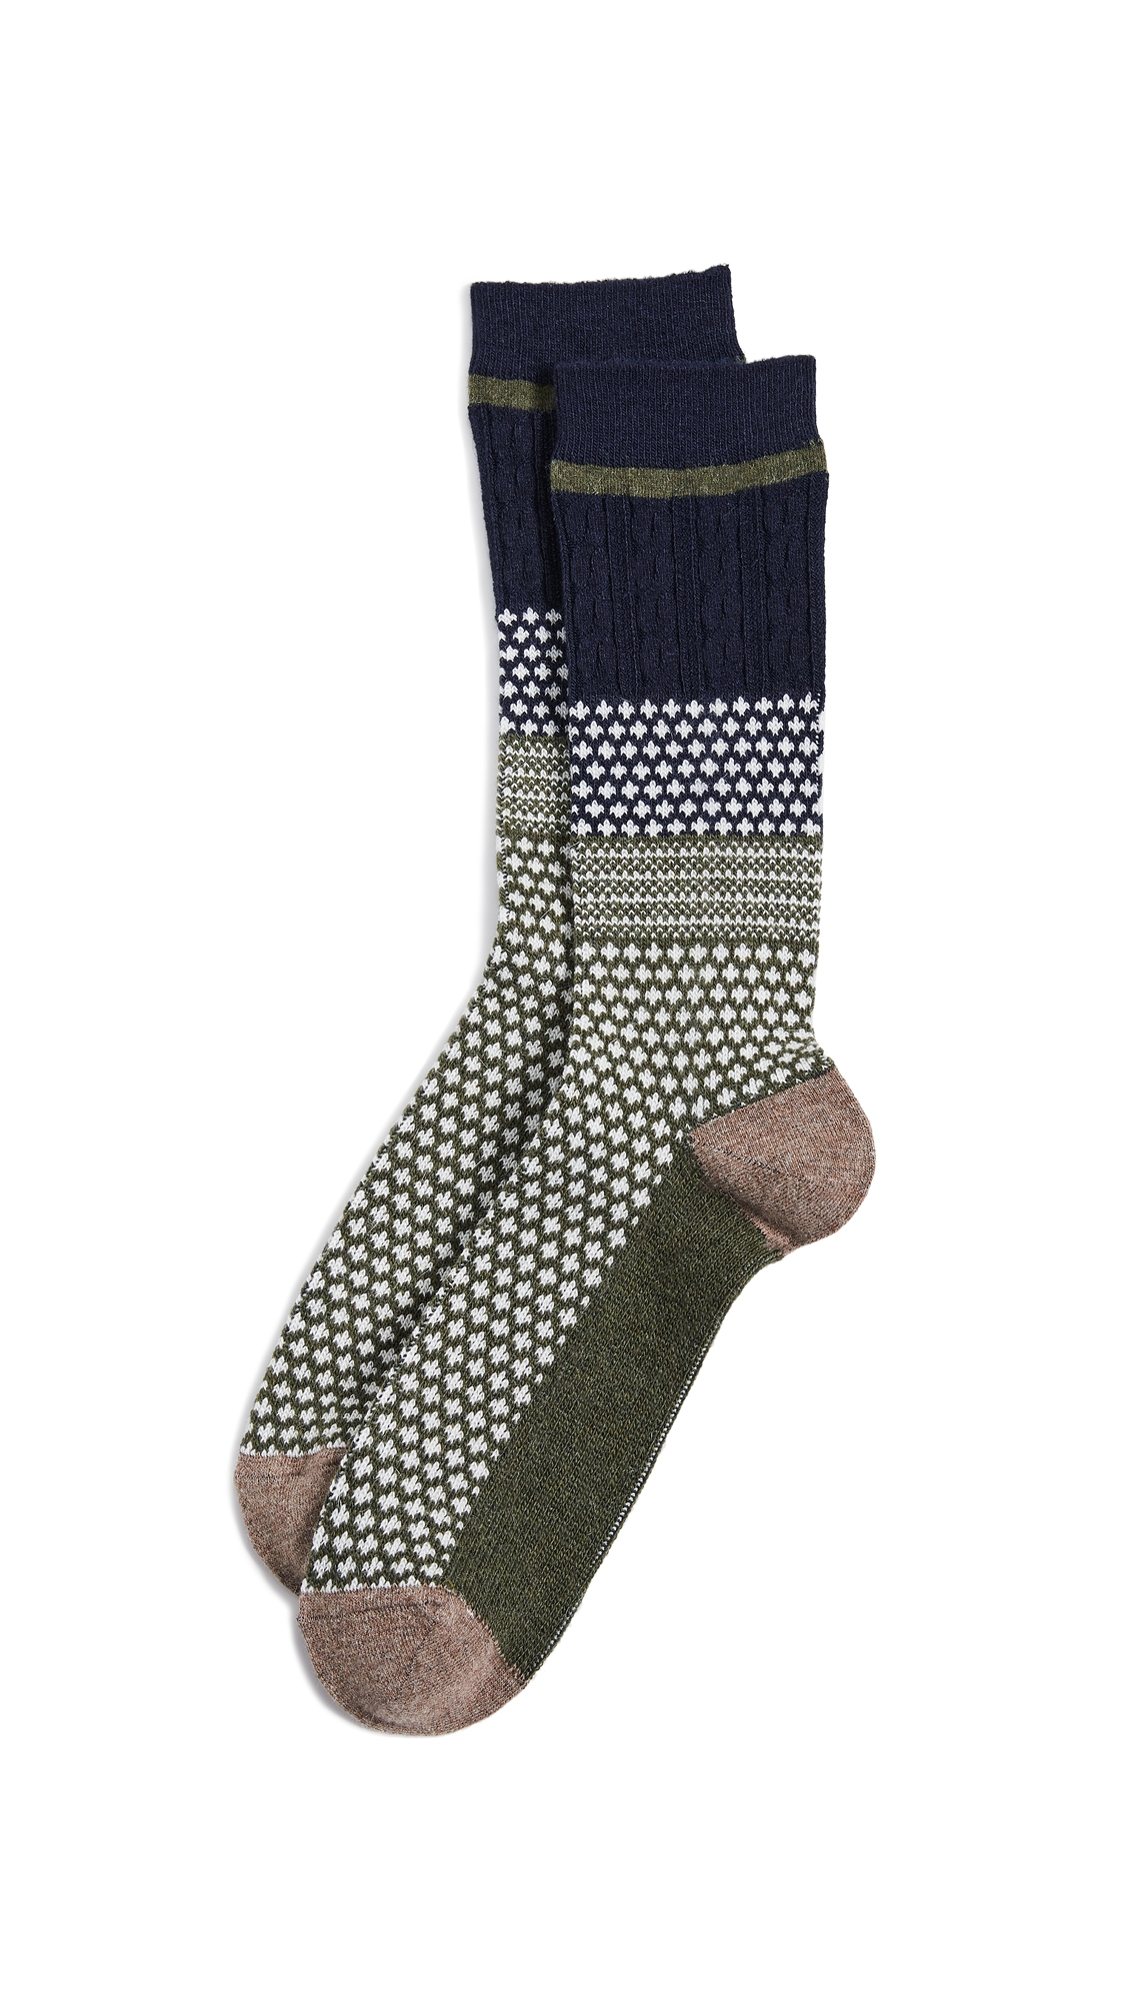 ANONYMOUS ISM CHESUNUT JACQUARD CREW SOCKS